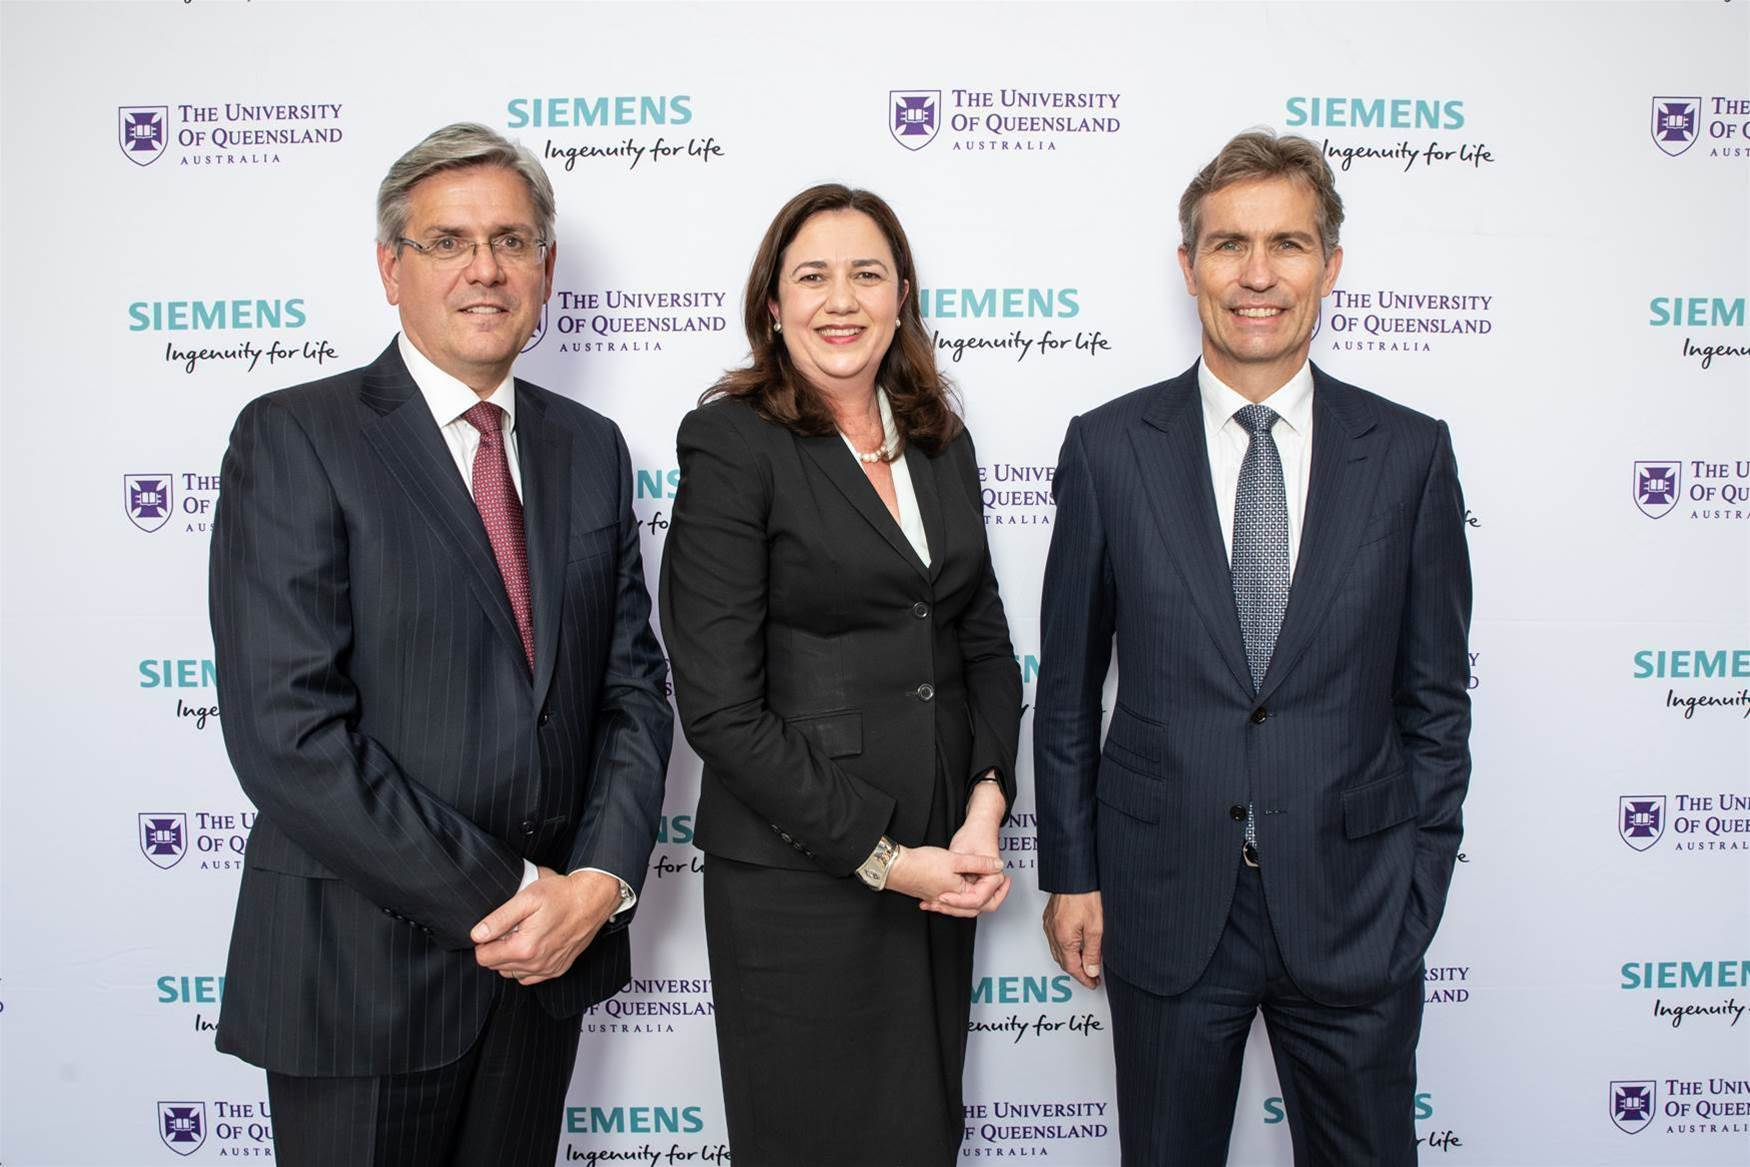 UQ receives $500m software grant from Siemens